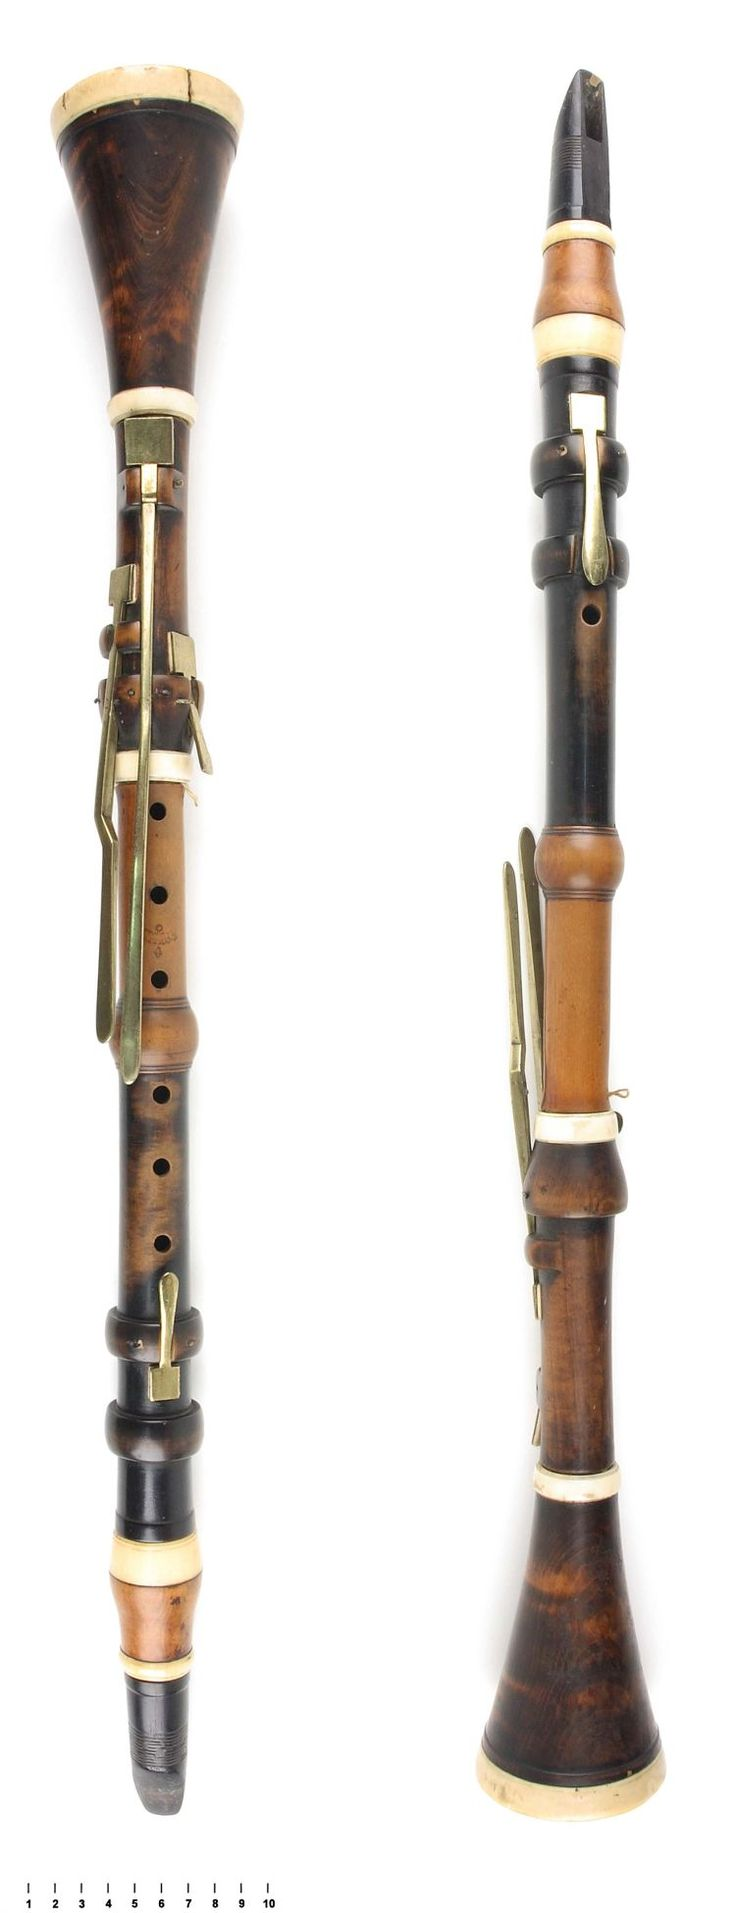 Baroque Clarinet in C 1770 T. COLLIER / LONDON Boxwood, Ivory, Brass and Ebony- Unusual Mix of materials